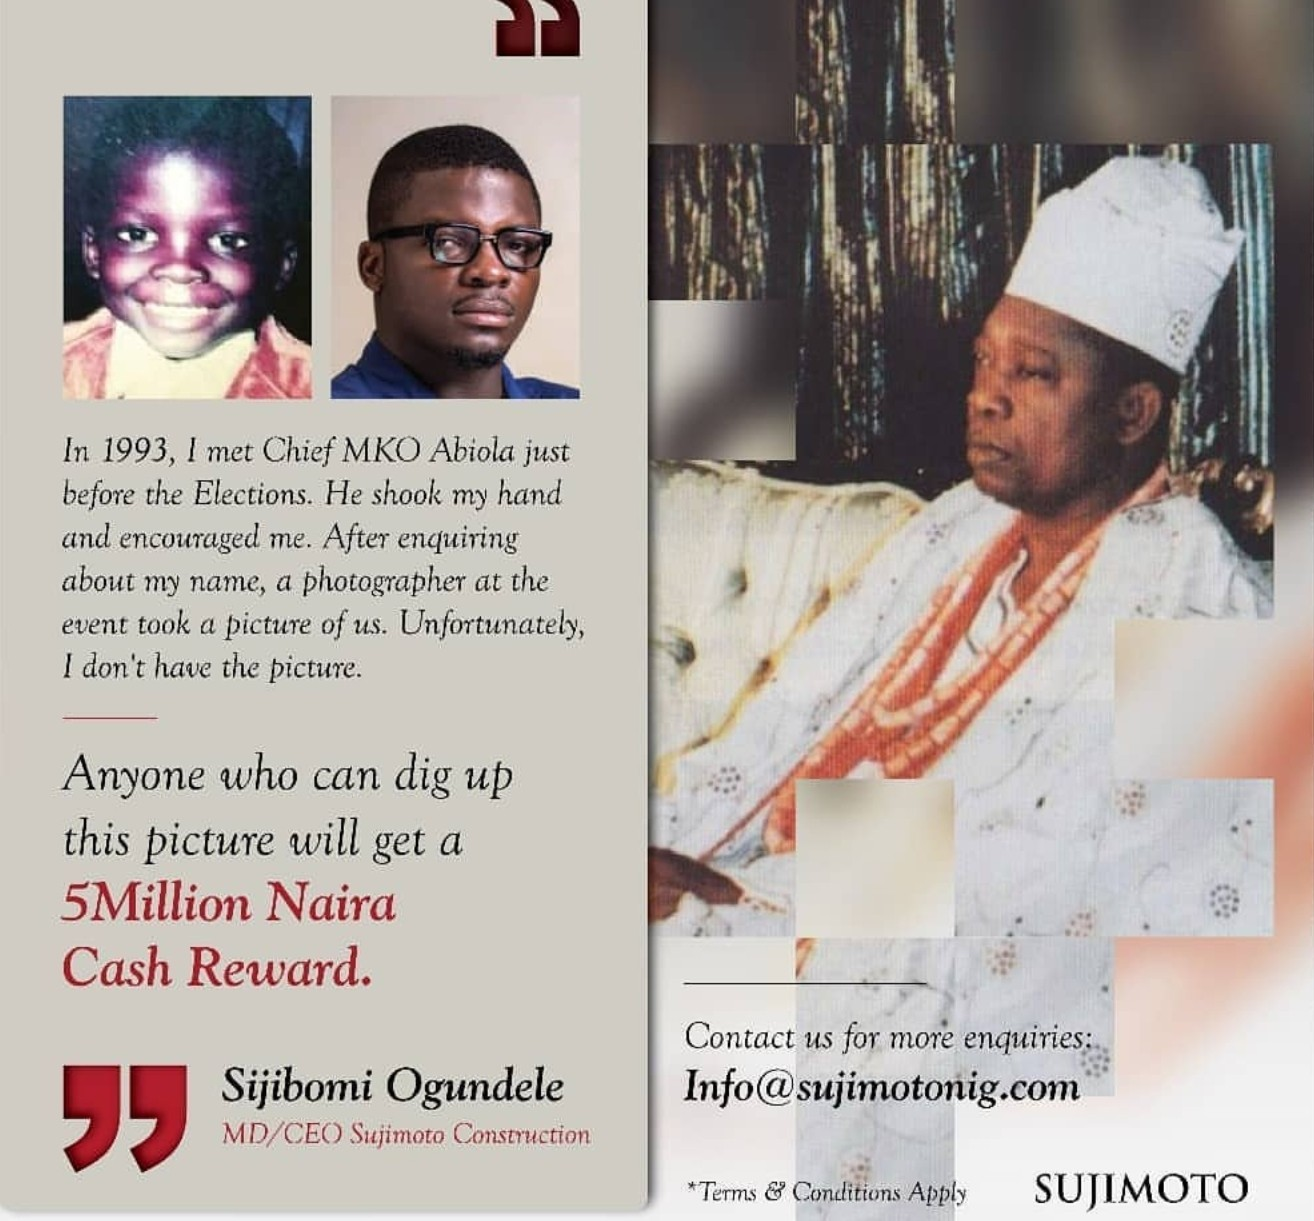 Sujimoto is offeriing N5million to anyone who can present a 1993 photo of him with MKO Abiola